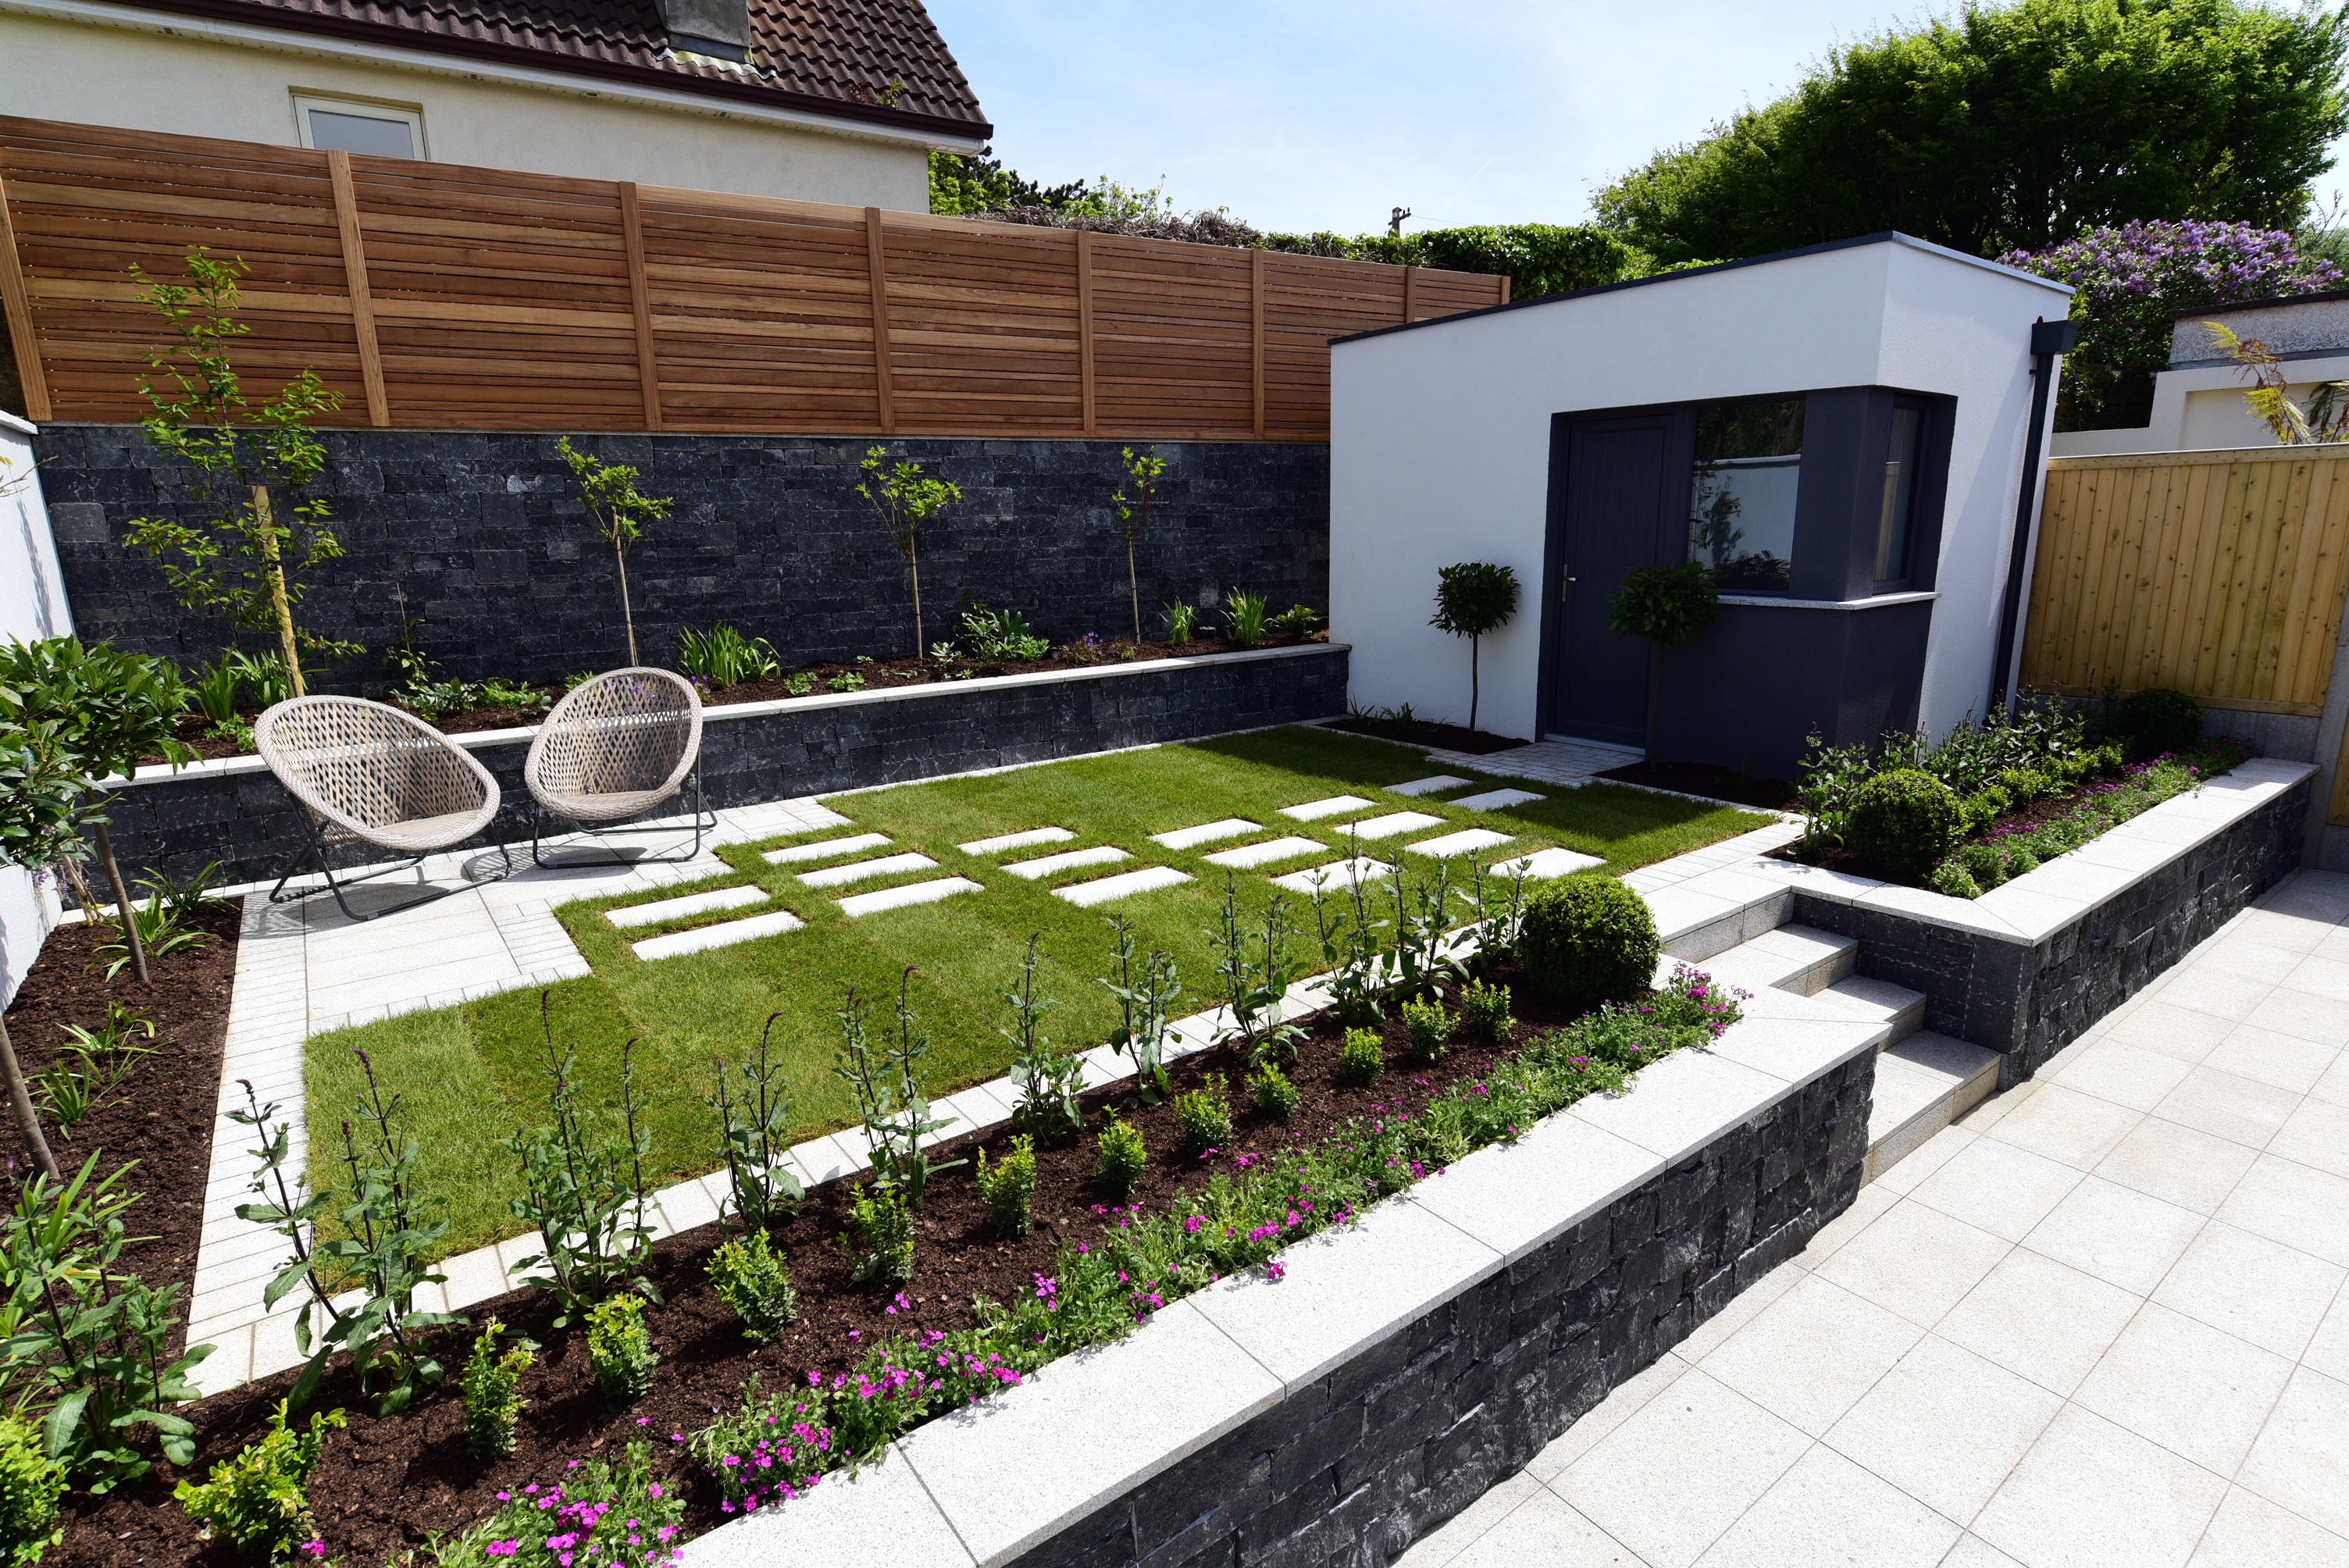 Back Garden Ideas Ireland - Garden and Modern House Image ...